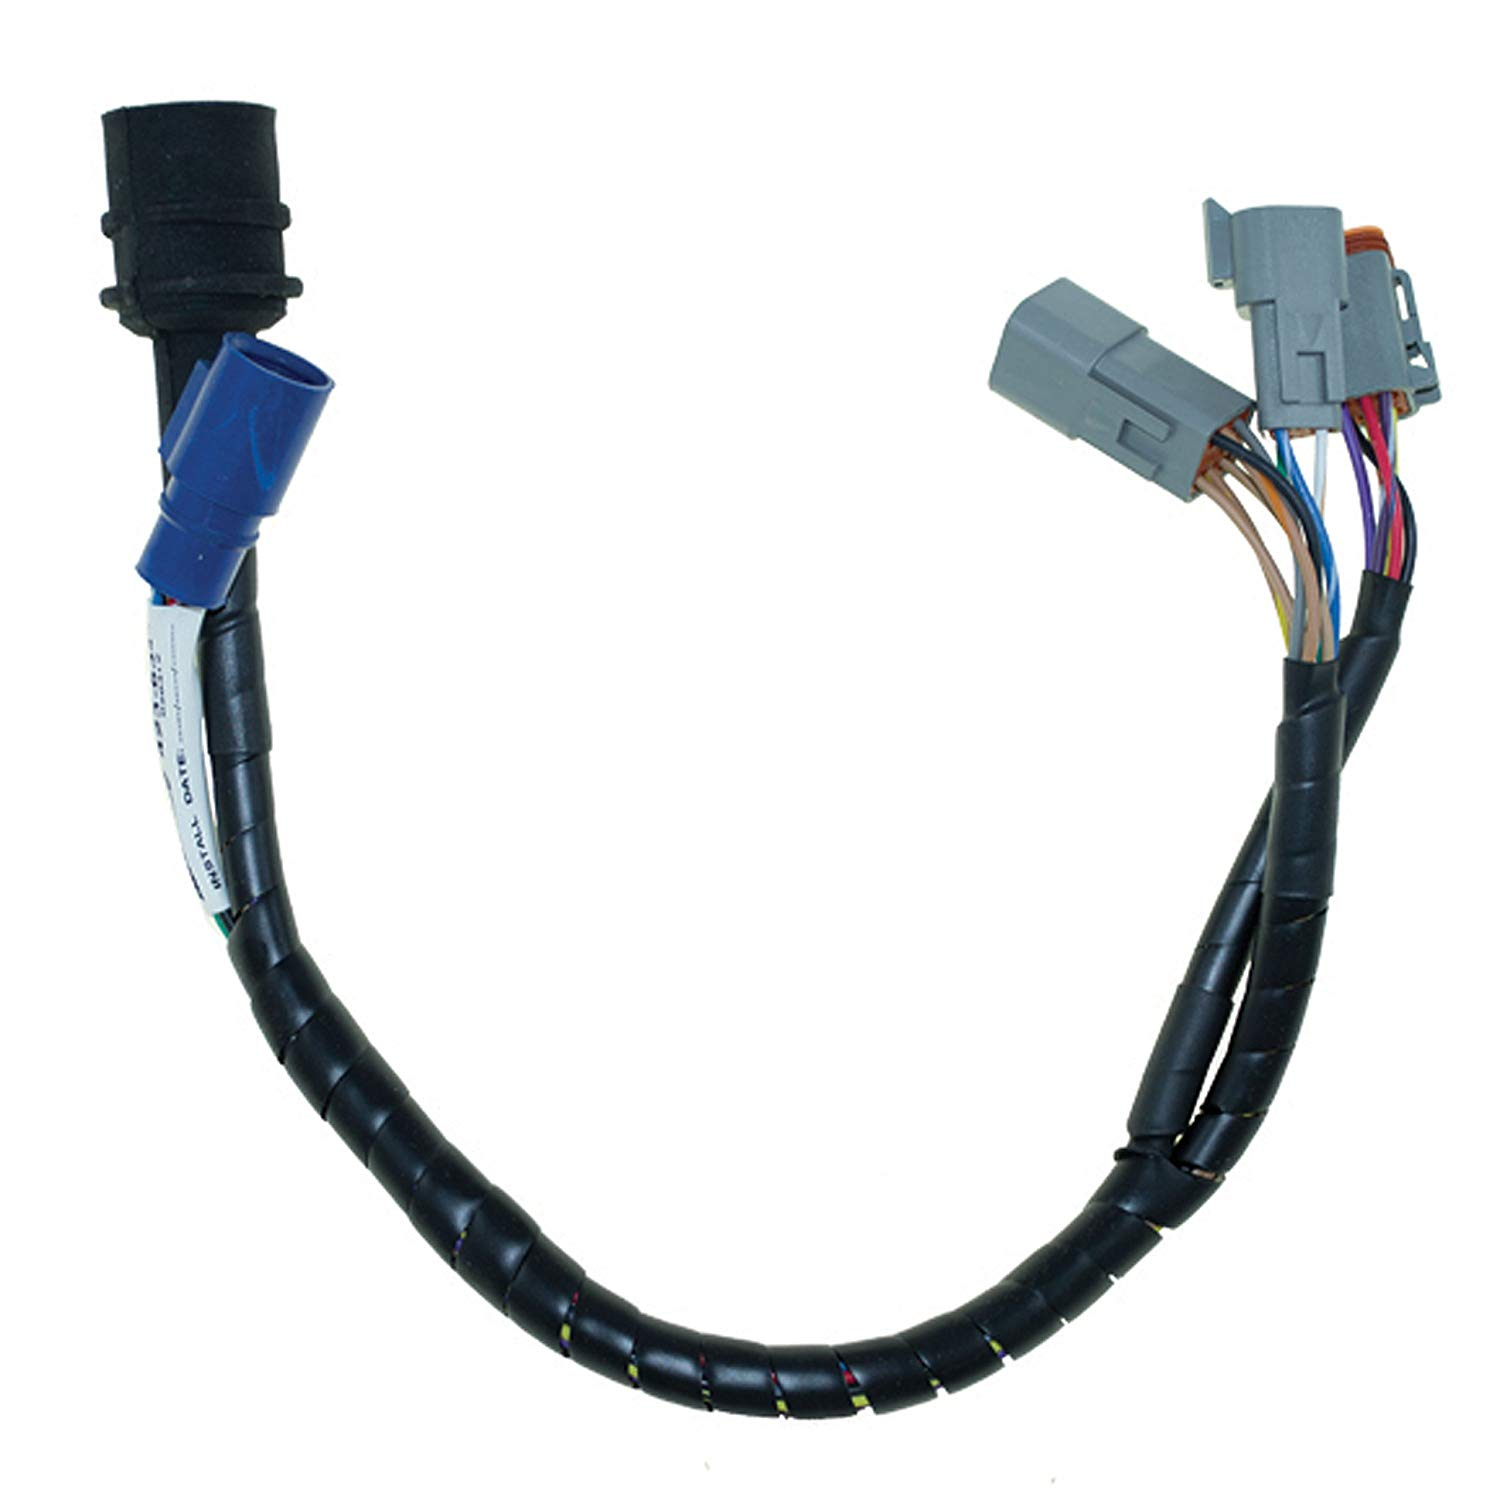 Evinrude Wiring Harness Connectors Library Johnson Omc New Instrument Tach 174732 Cdi Electronics 423 6344 Engine Adapter 1976 1995